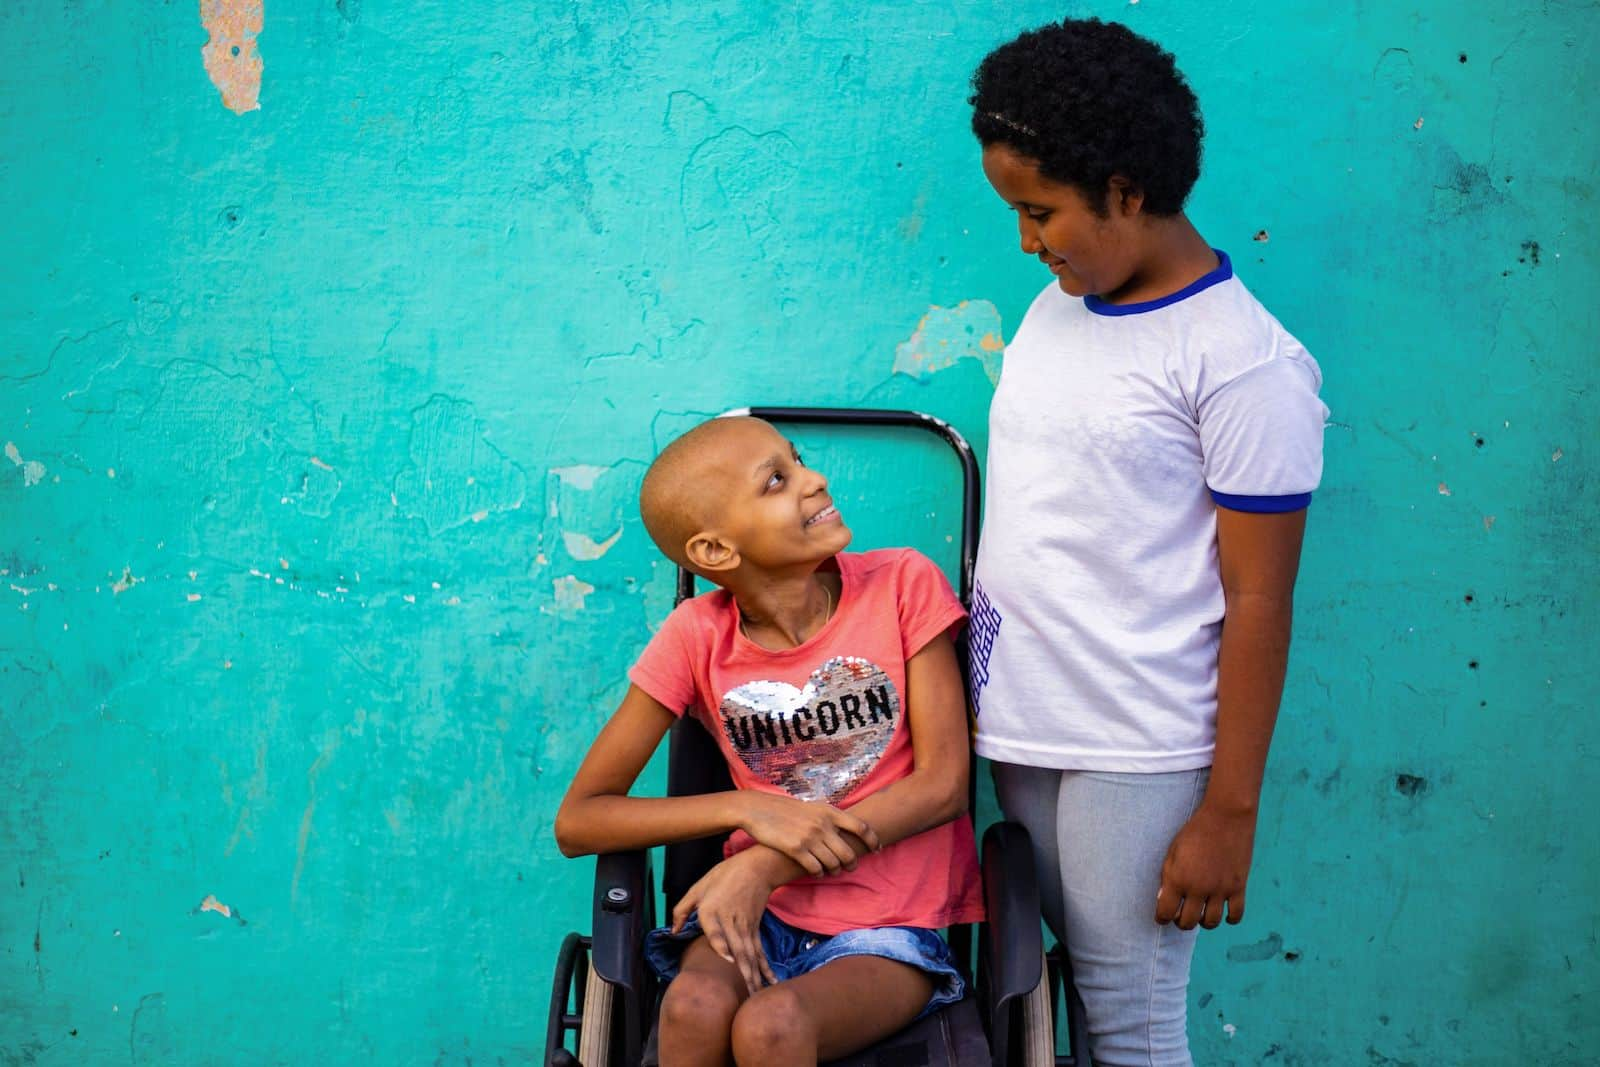 A girl in a white T-shirt stands next to a girl in a pink shirt, sitting in a wheelchair. They are looking at each other in front of a turquoise wall.